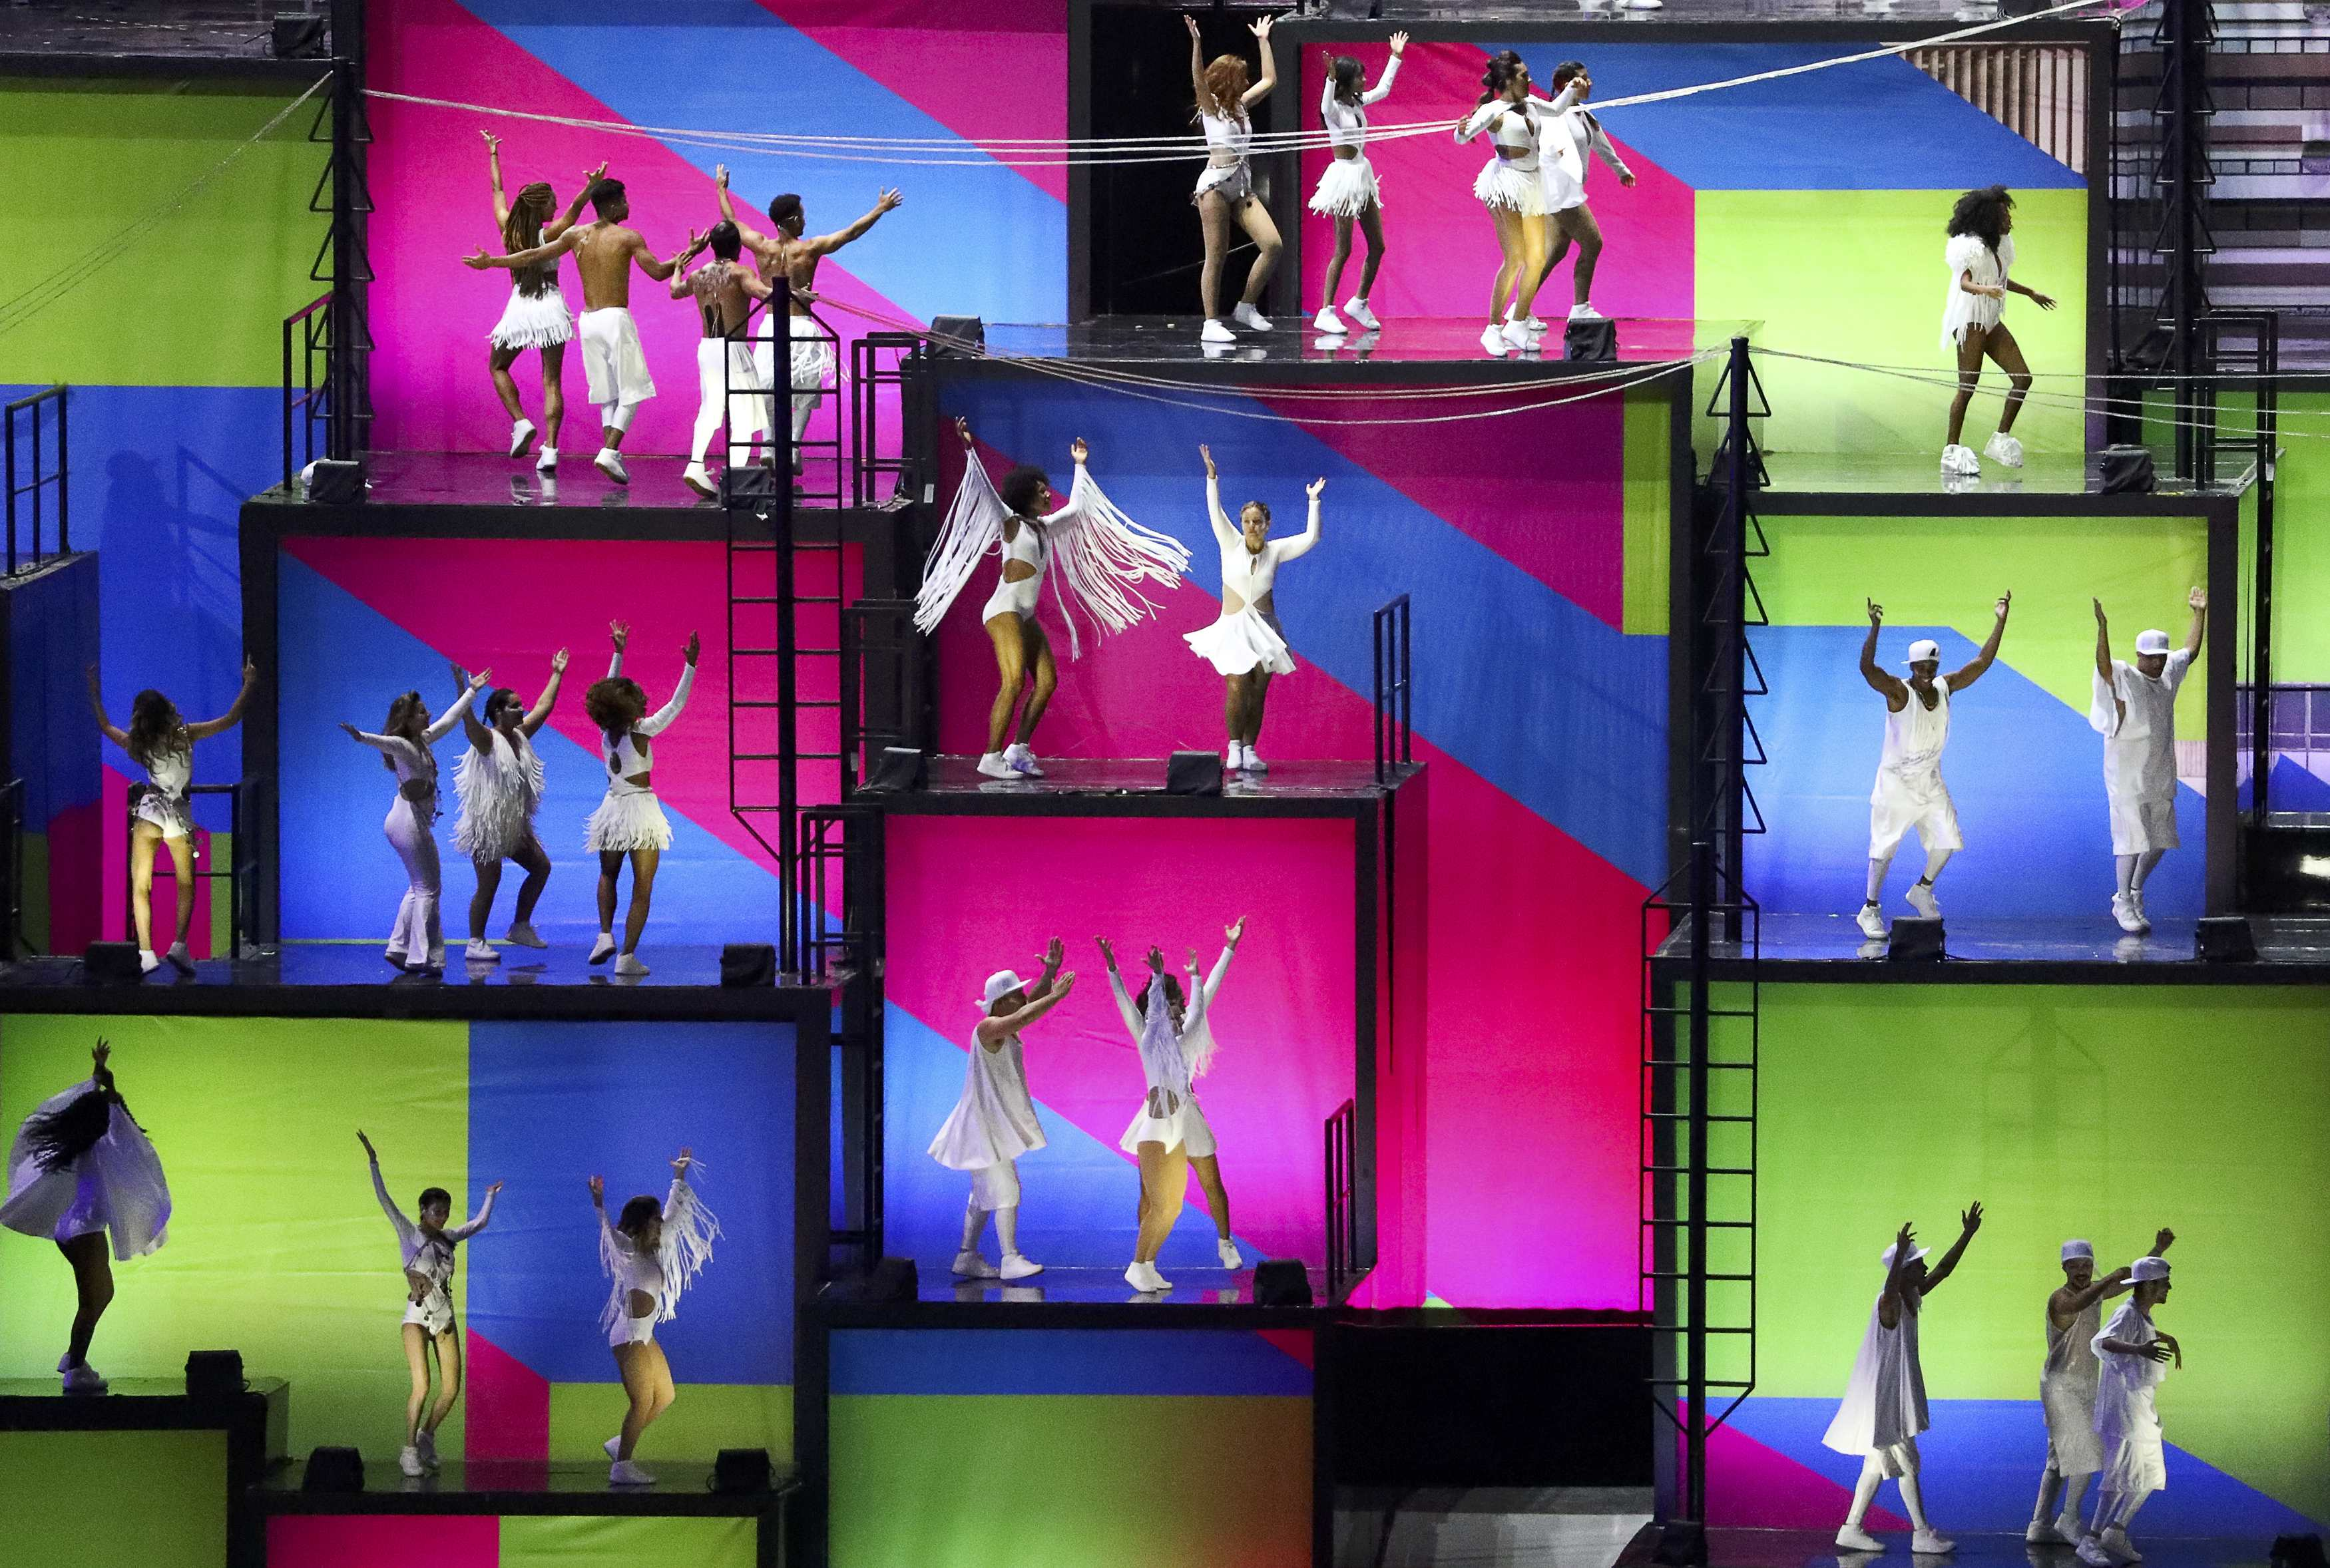 2016 Rio Olympics - Opening Ceremony - Maracana - Rio de Janeiro, Brazil - 05/08/2016. Performers take part in the opening ceremony.       REUTERS/Lucy Nicholson   FOR EDITORIAL USE ONLY. NOT FOR SALE FOR MARKETING OR ADVERTISING CAMPAIGNS.